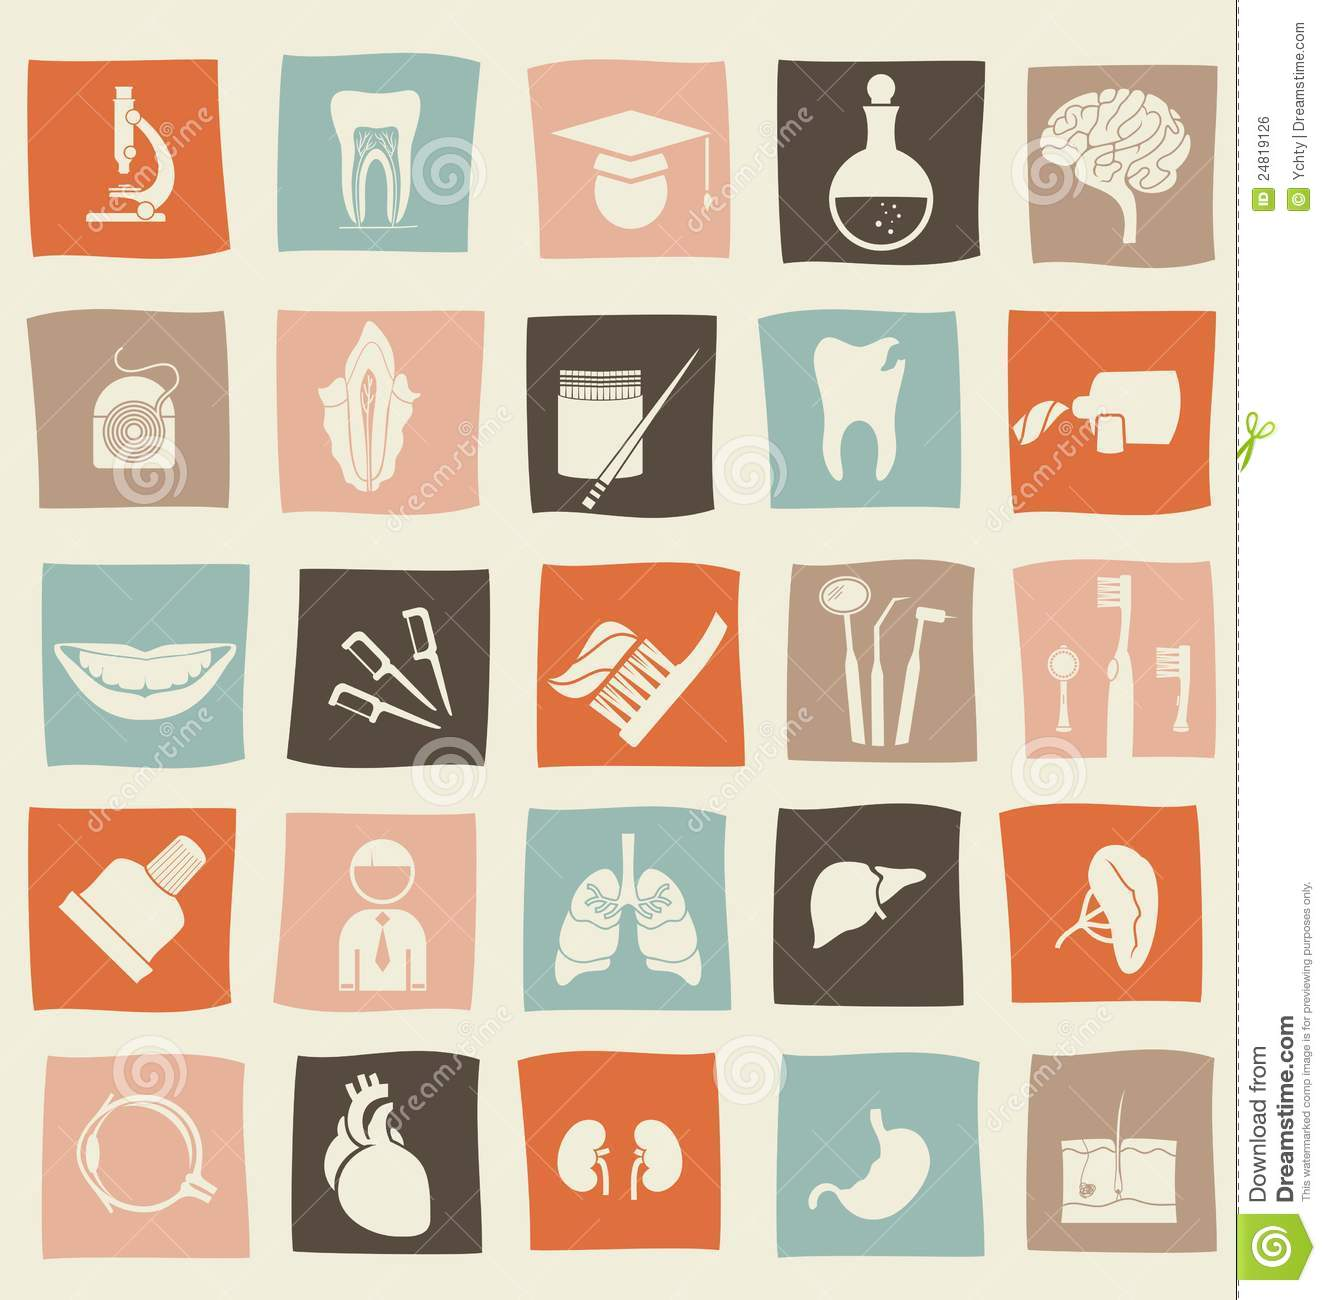 Medical, Science And Anatomical Icons In Vector Stock Vector ...